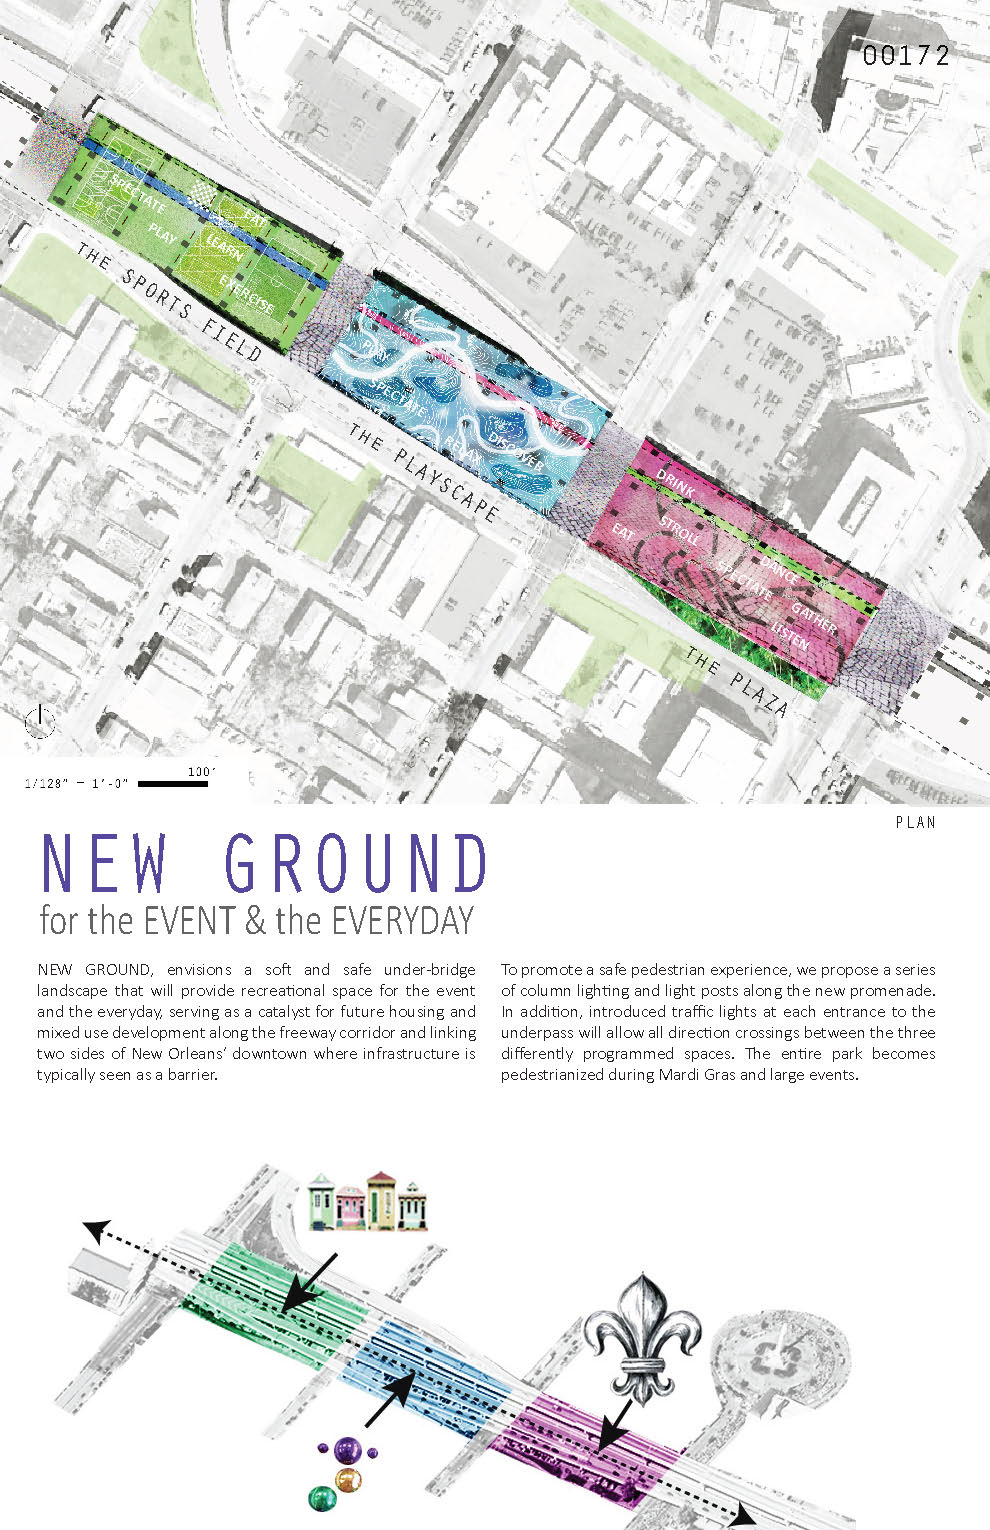 00172_NEW GROUND_Page_1.jpg